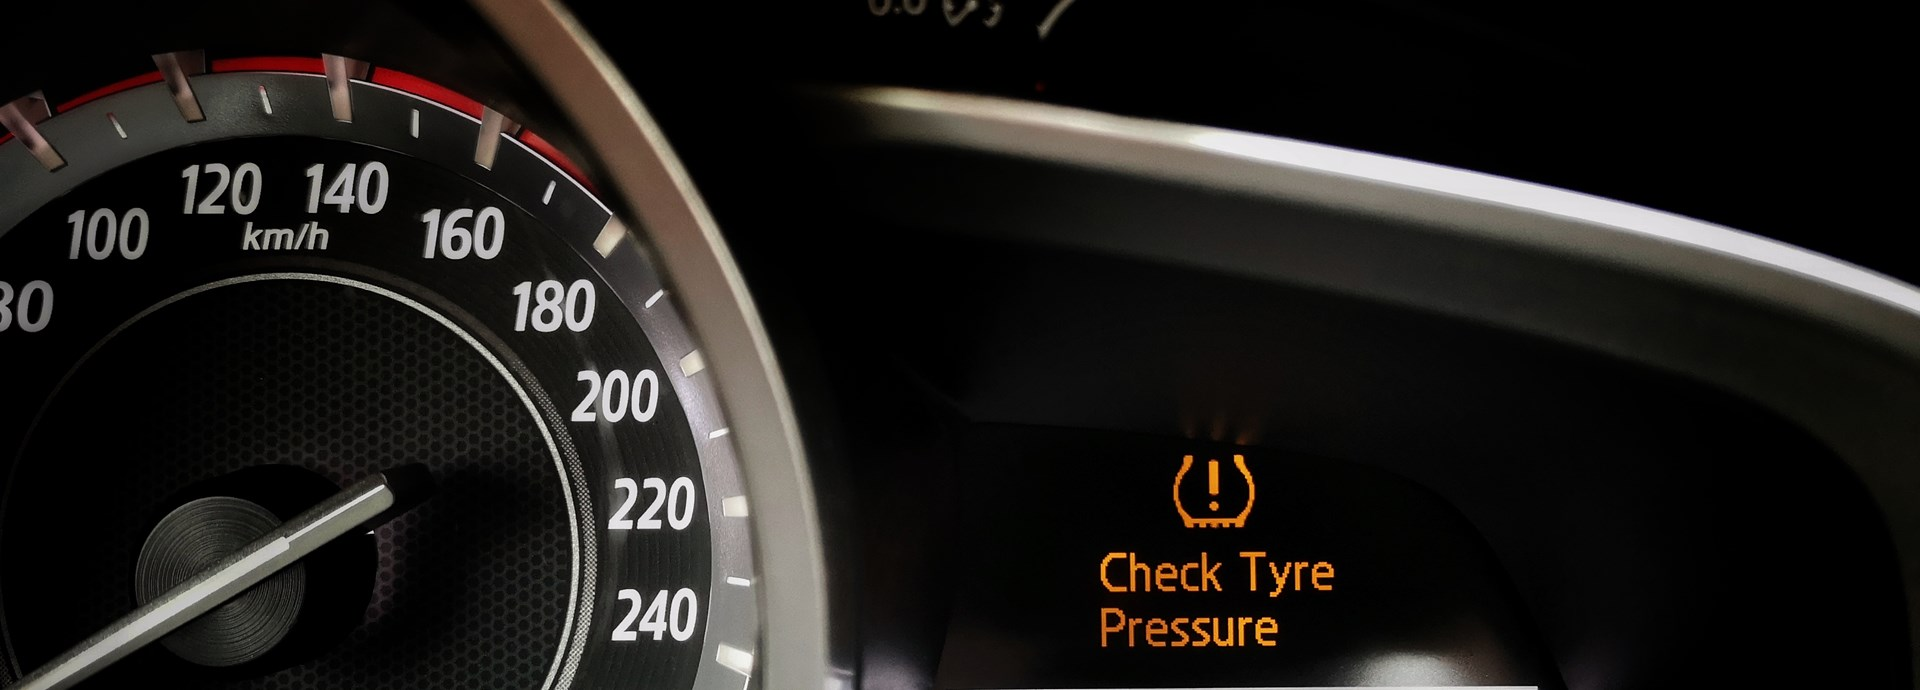 car dashboard is highlighting the check tyre pressure light is on